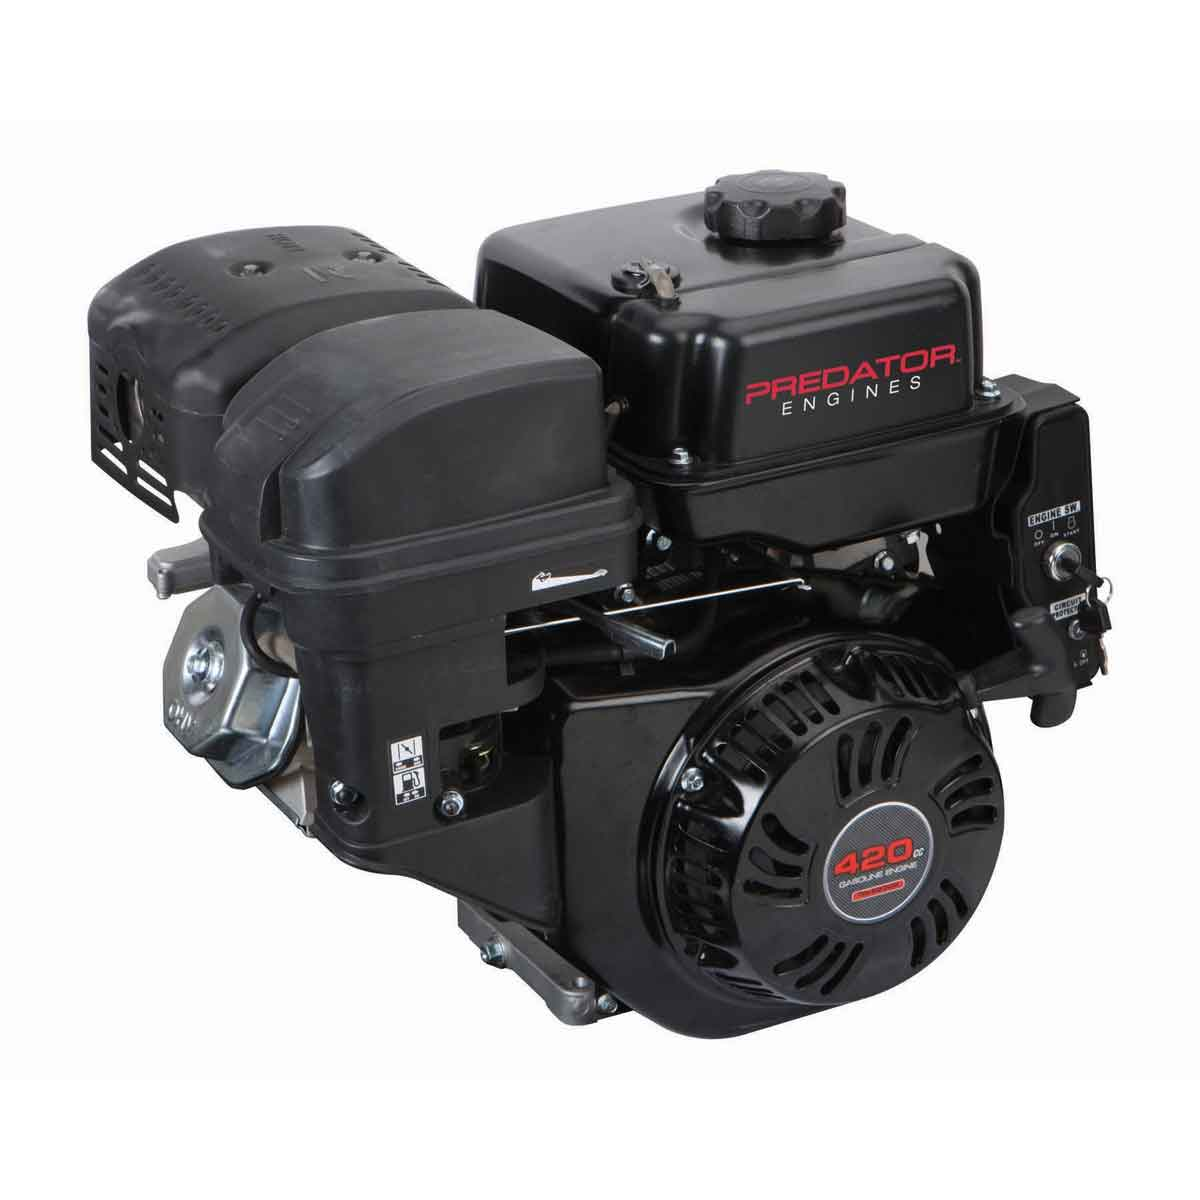 Predator engine 420cc 13 hp harbor freight